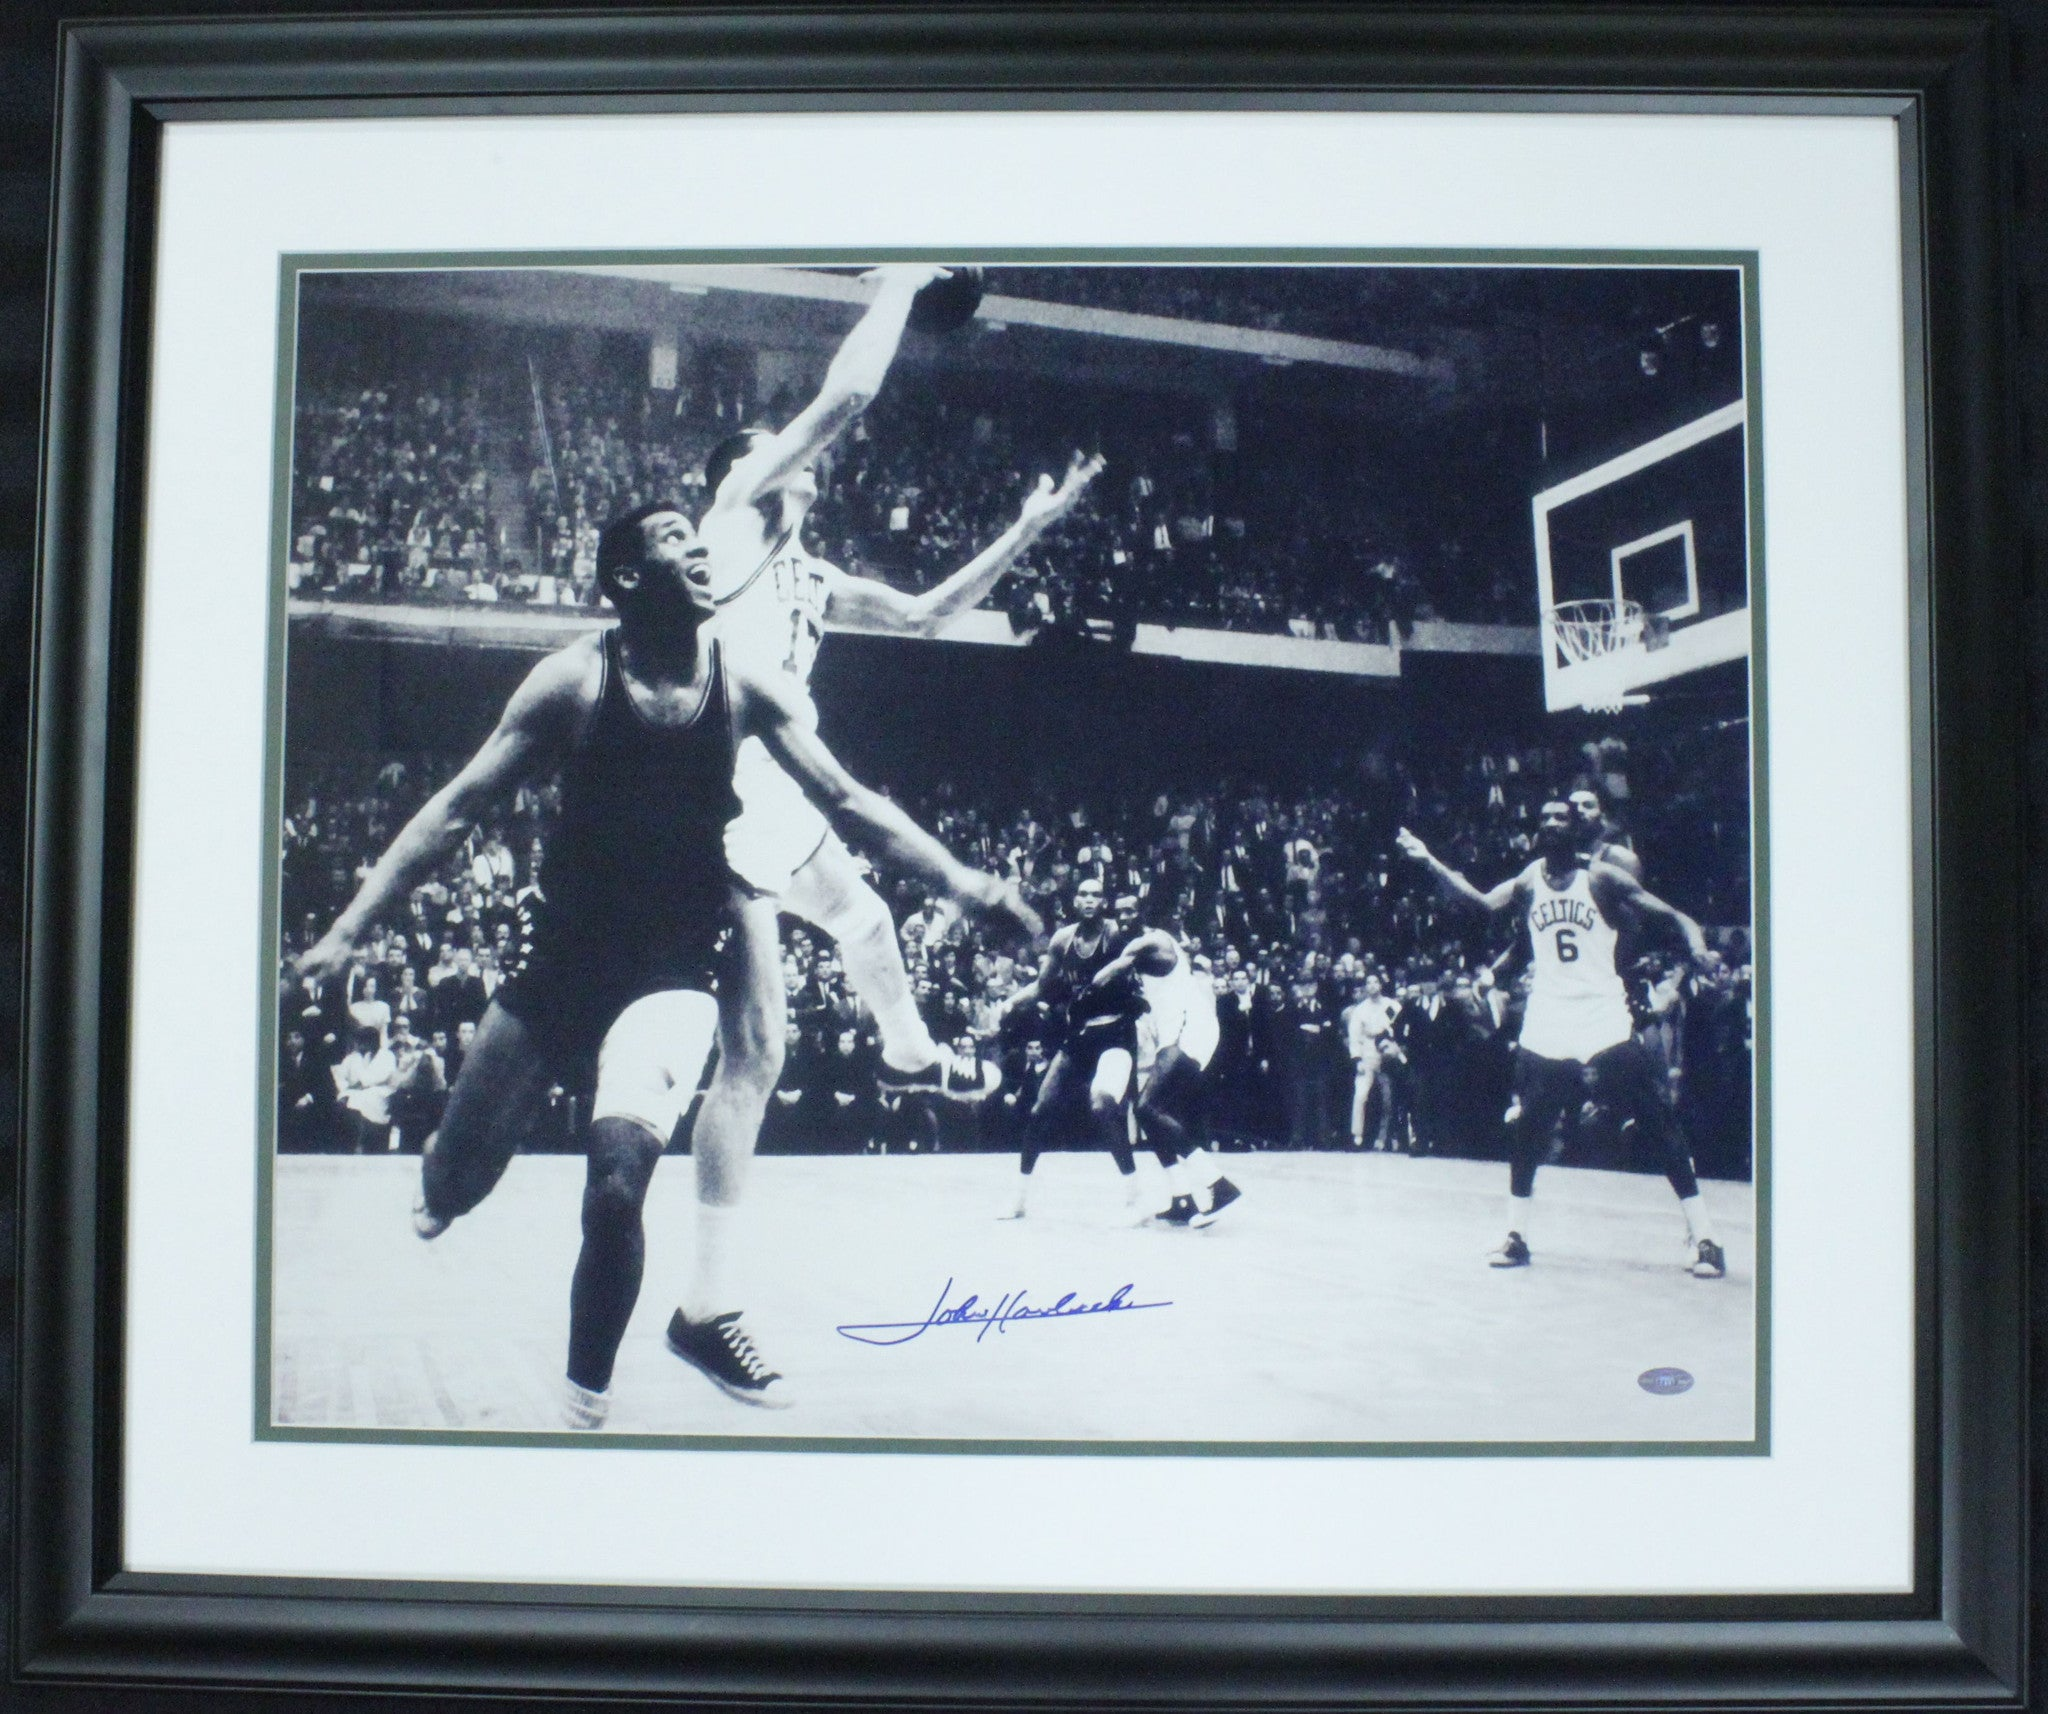 John Havlichek Signed 16x20 Photo Framed